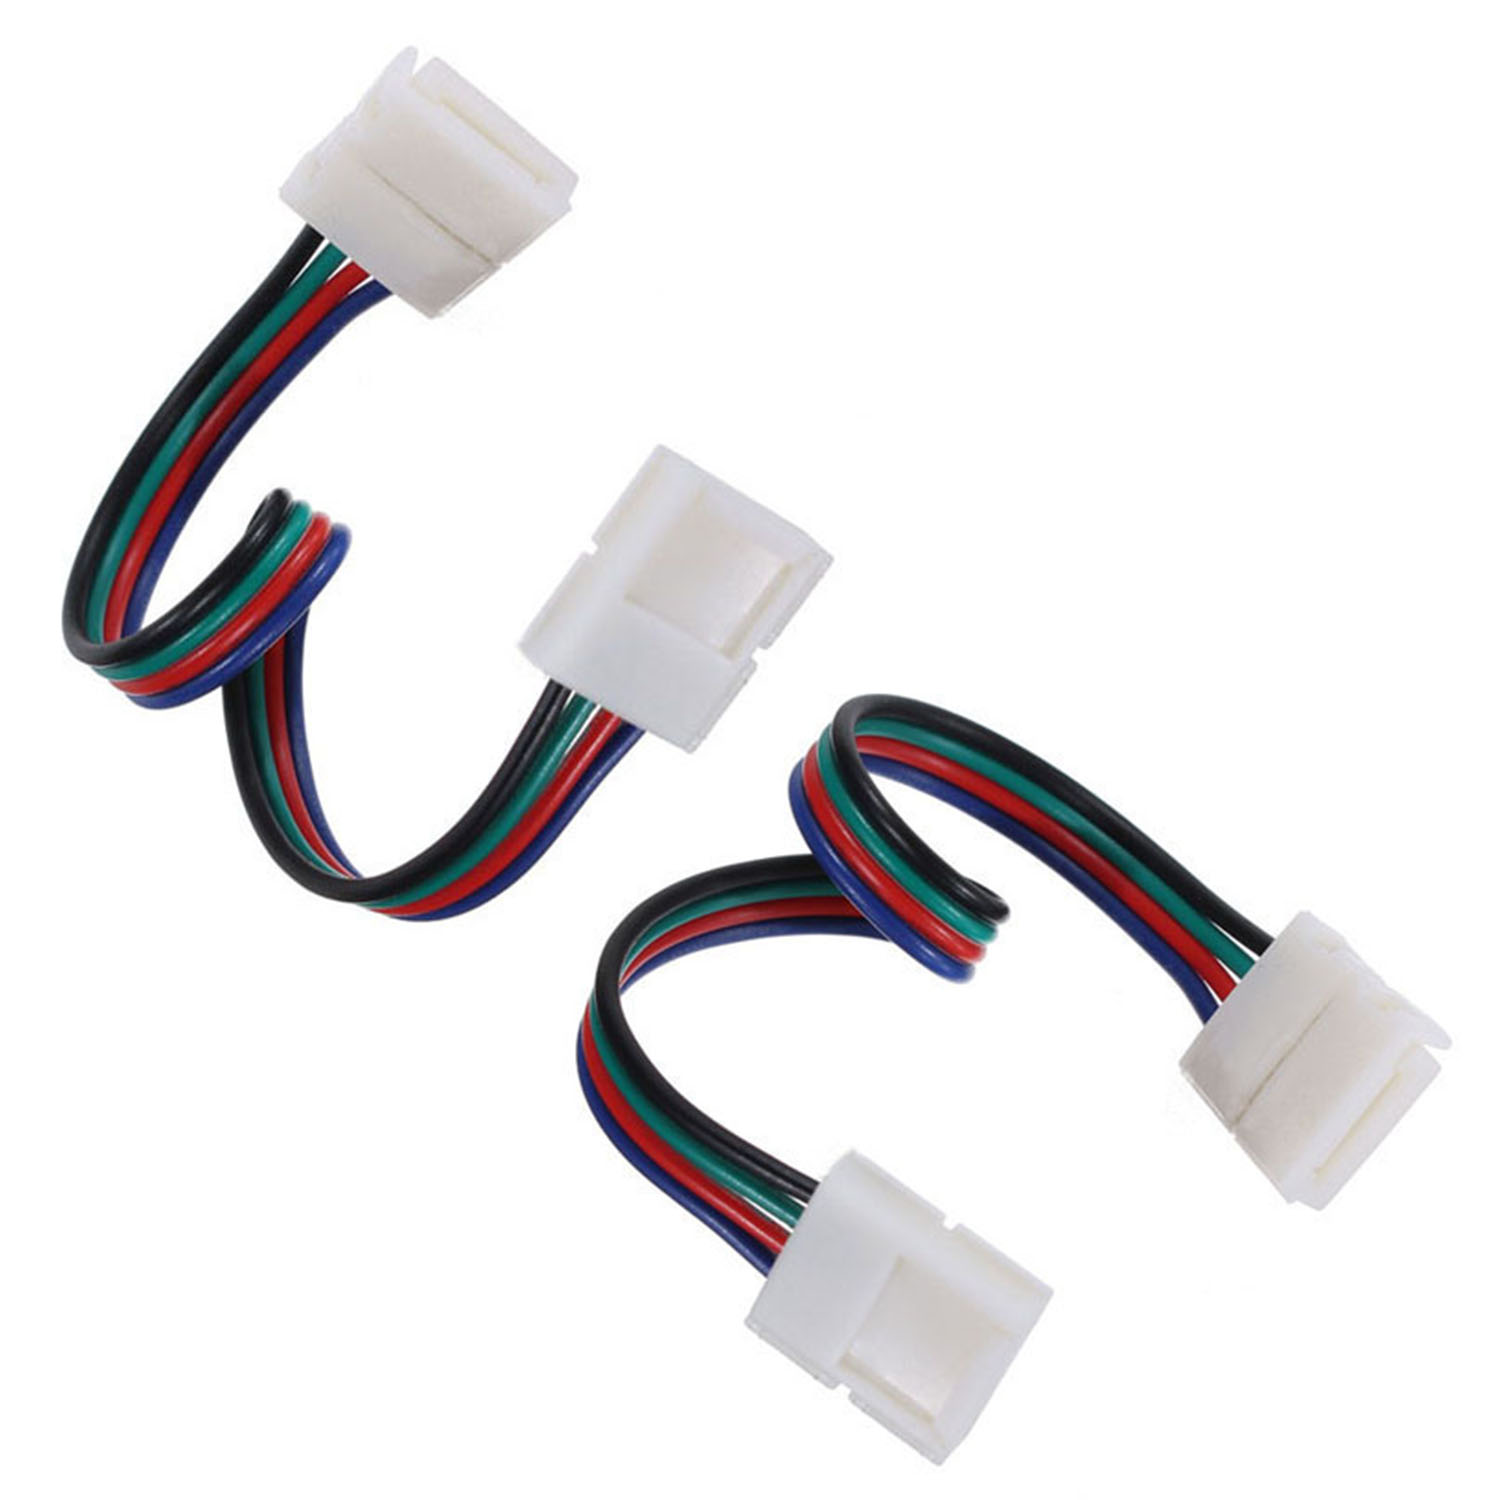 1x10x Rgb 3528 5050 Led Strip Light Adapter Dc Bolt Connectors Wiring For Single Color Smd Ebay Product Connector With Line Width 10mm Used And No Need Soldering